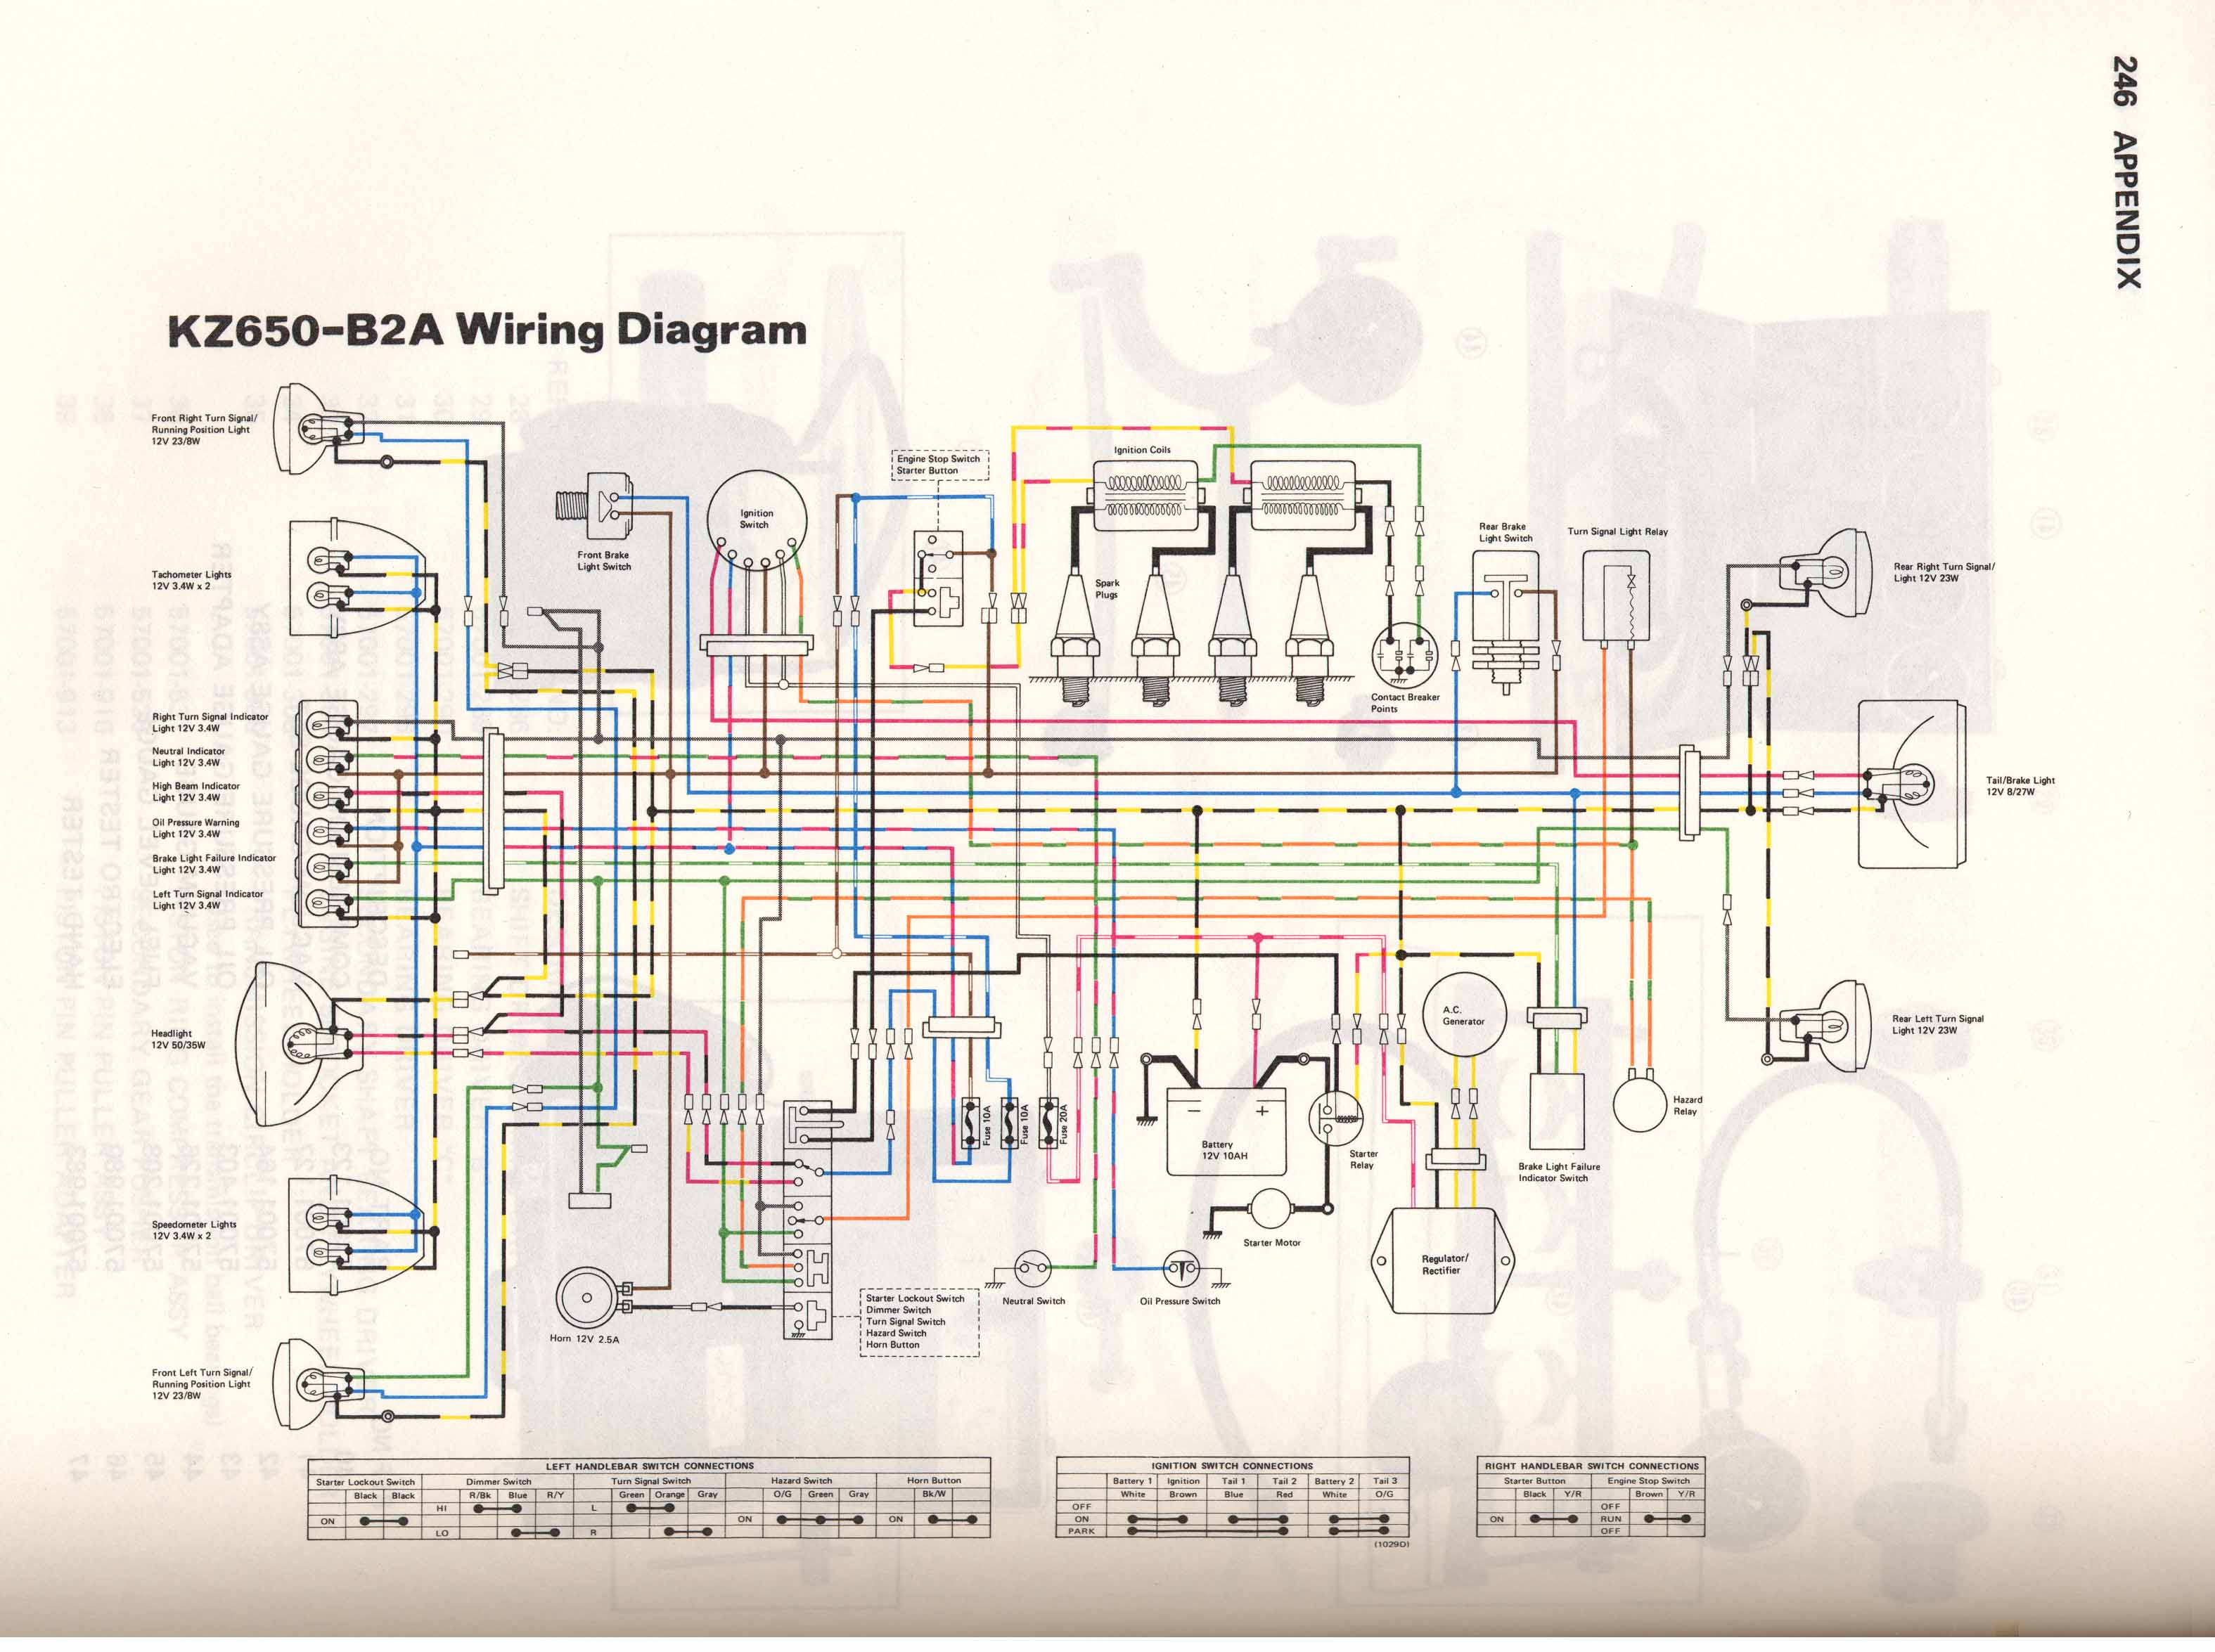 Strange Kz650 Info Wiring Diagrams Wiring Digital Resources Cettecompassionincorg